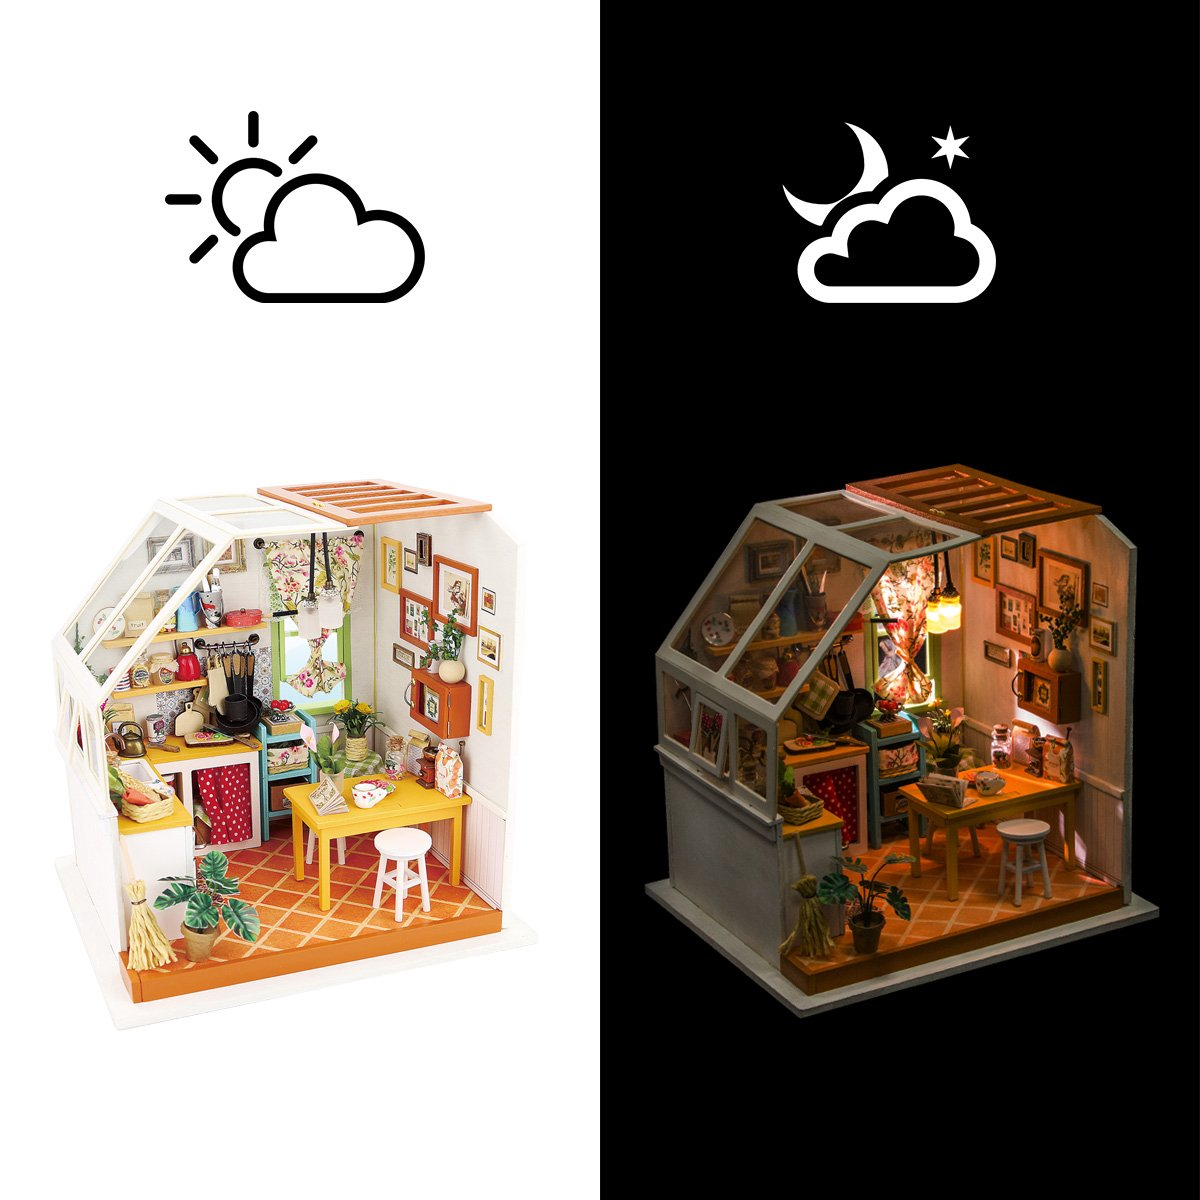 Jasons Kitchen Rolife DIY Dollhouse Miniature Kit,House Kit with Dollhouse Furniture,Wooden Dollhouse Miniature Kits,Birthday//Christmas for Handicraft Lovers,Women and Girls